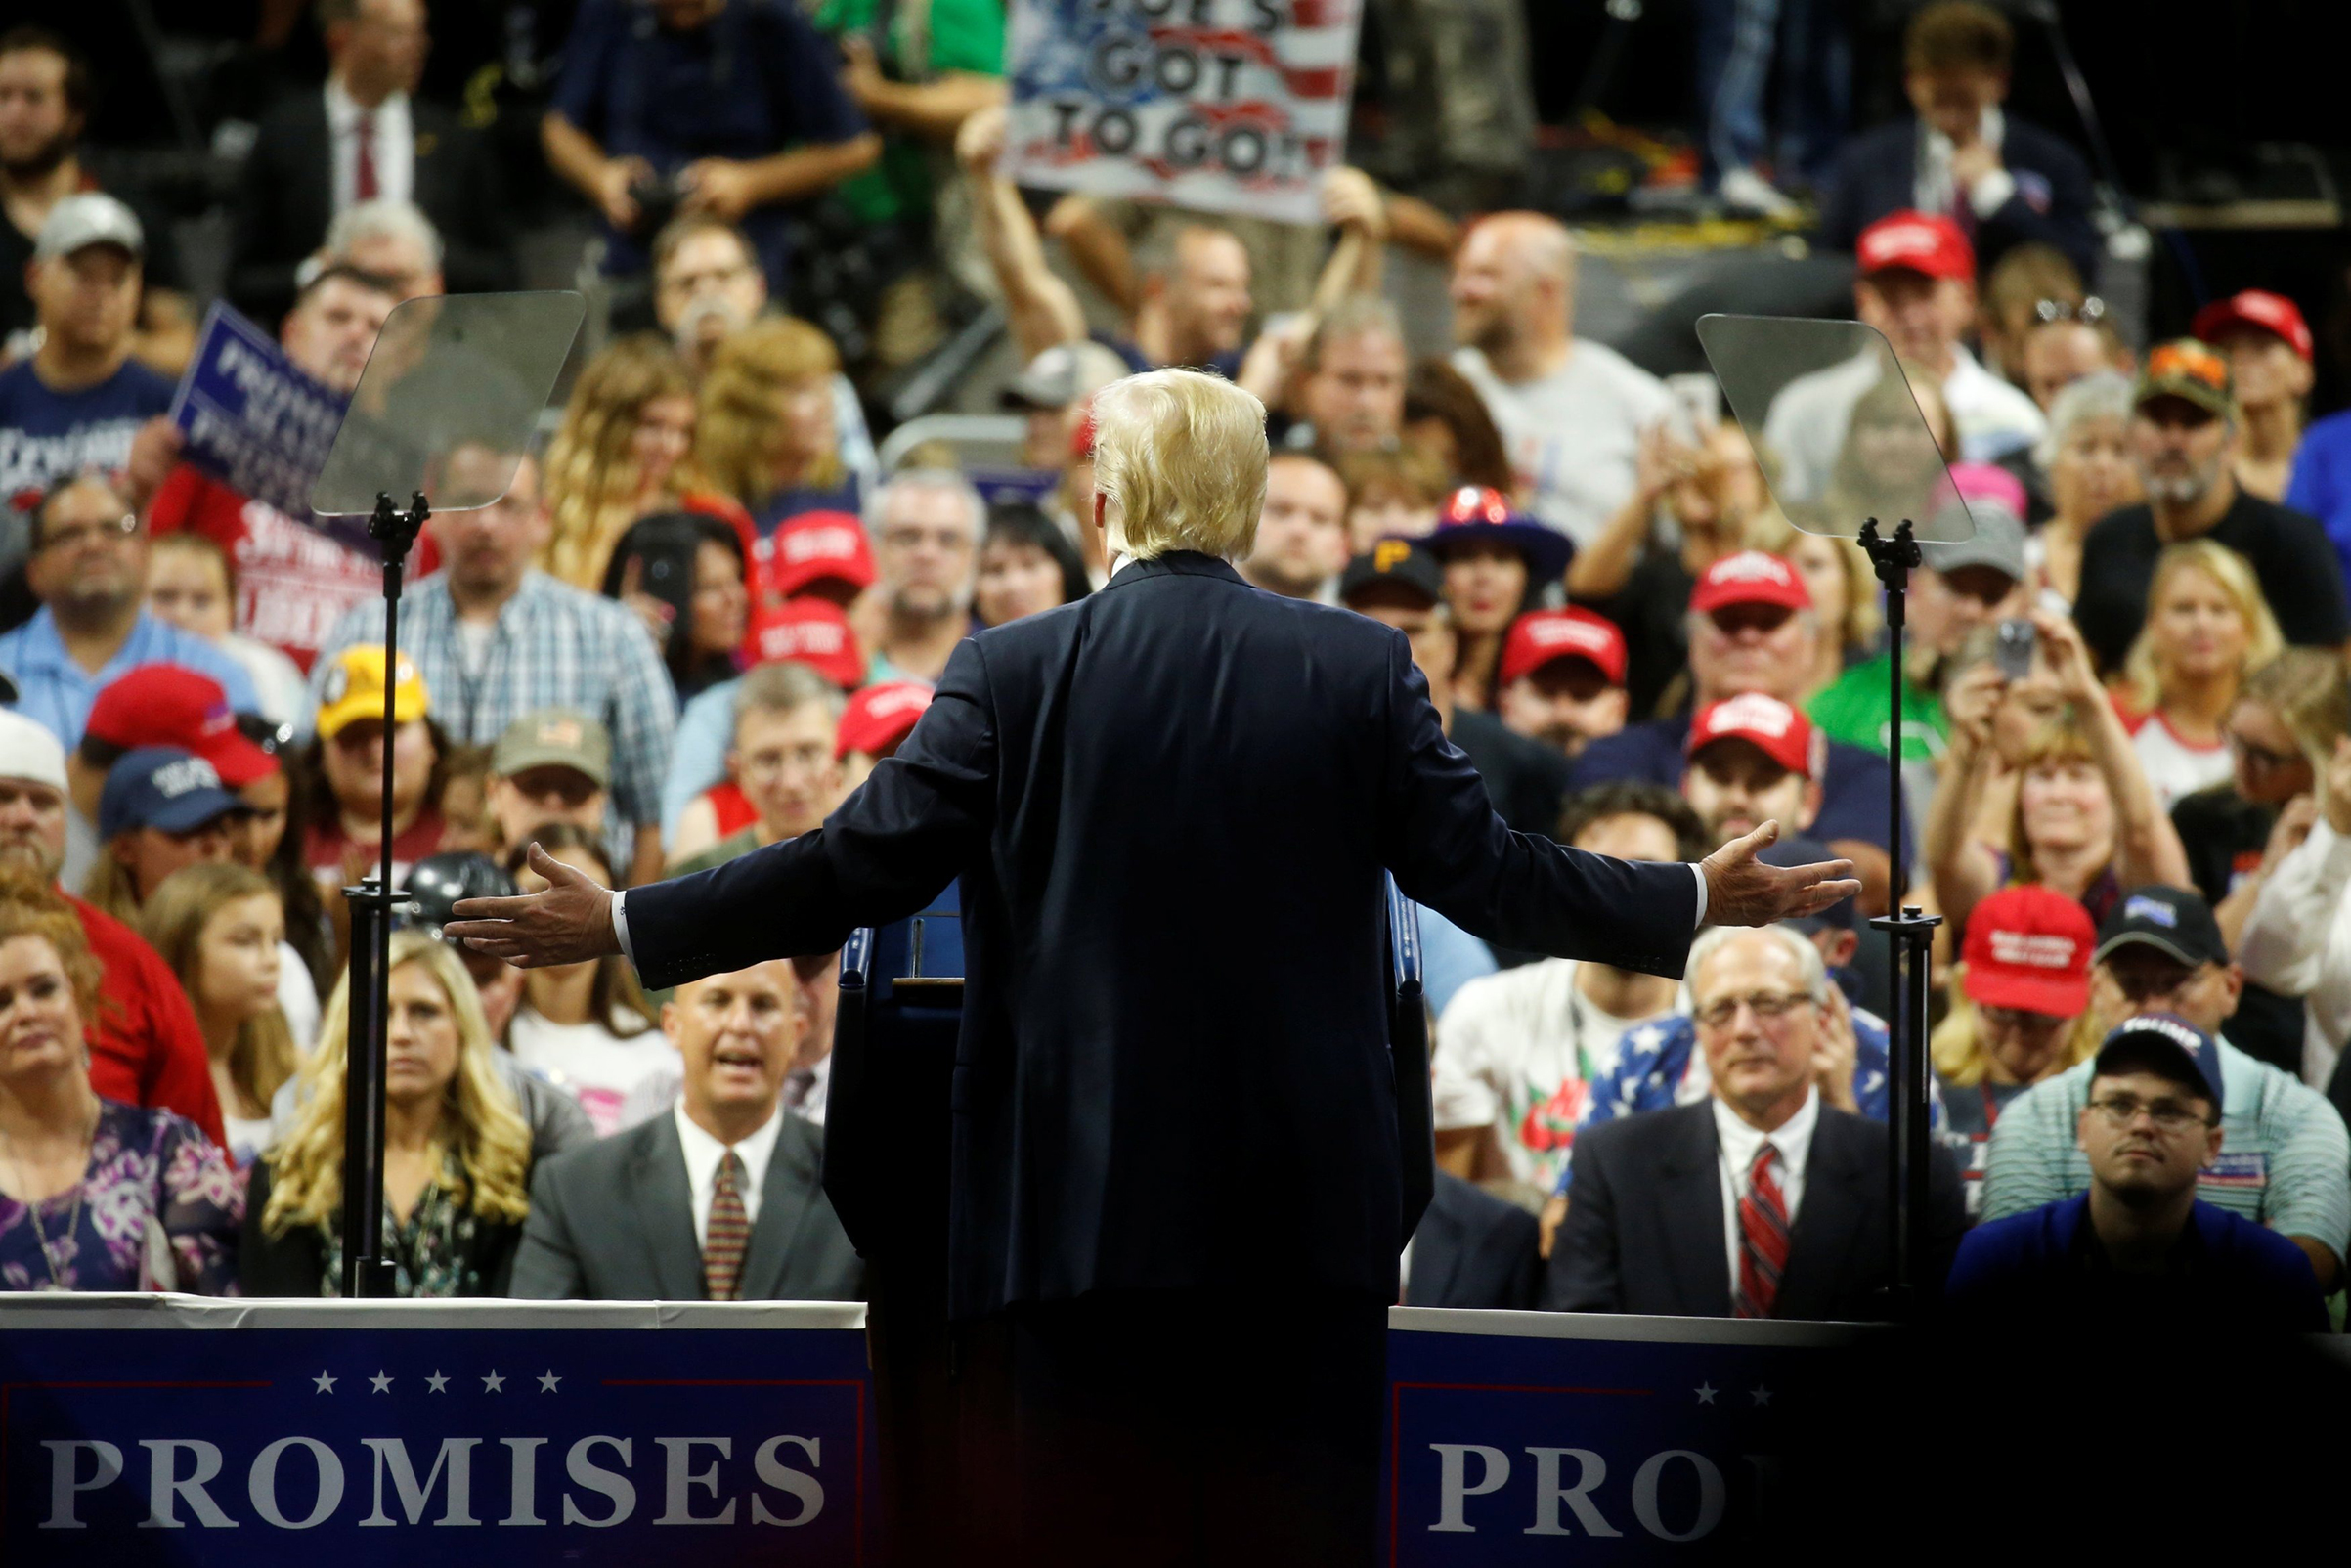 U.S. President Donald Trump speaks at a Make America Great Again rally at the Civic Center in Charleston